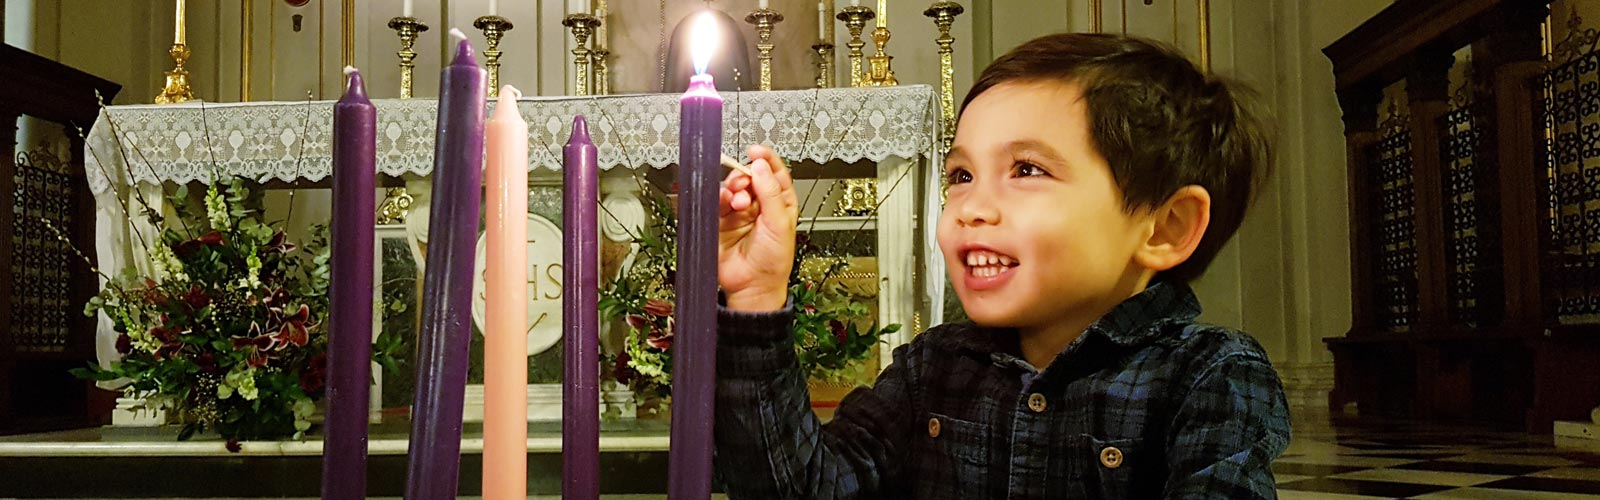 Boy lighting an Advent candle